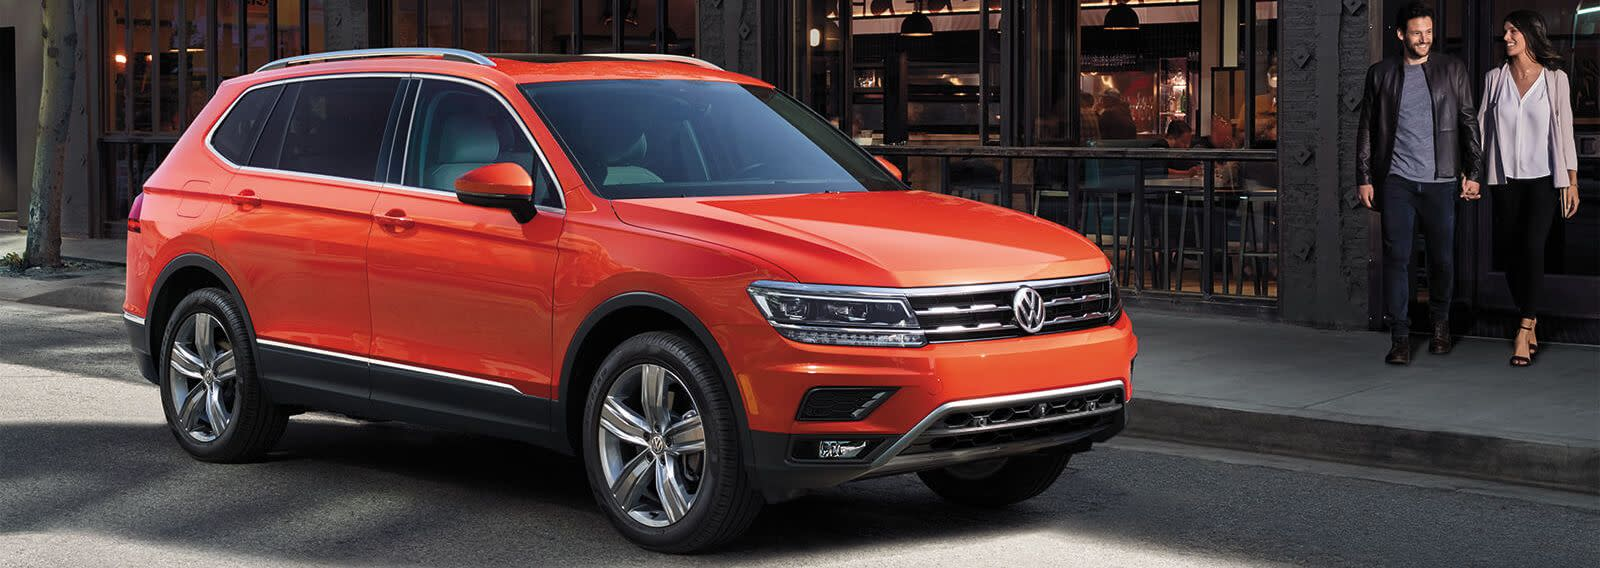 2019 Volkswagen Tiguan Leasing near Washington, DC